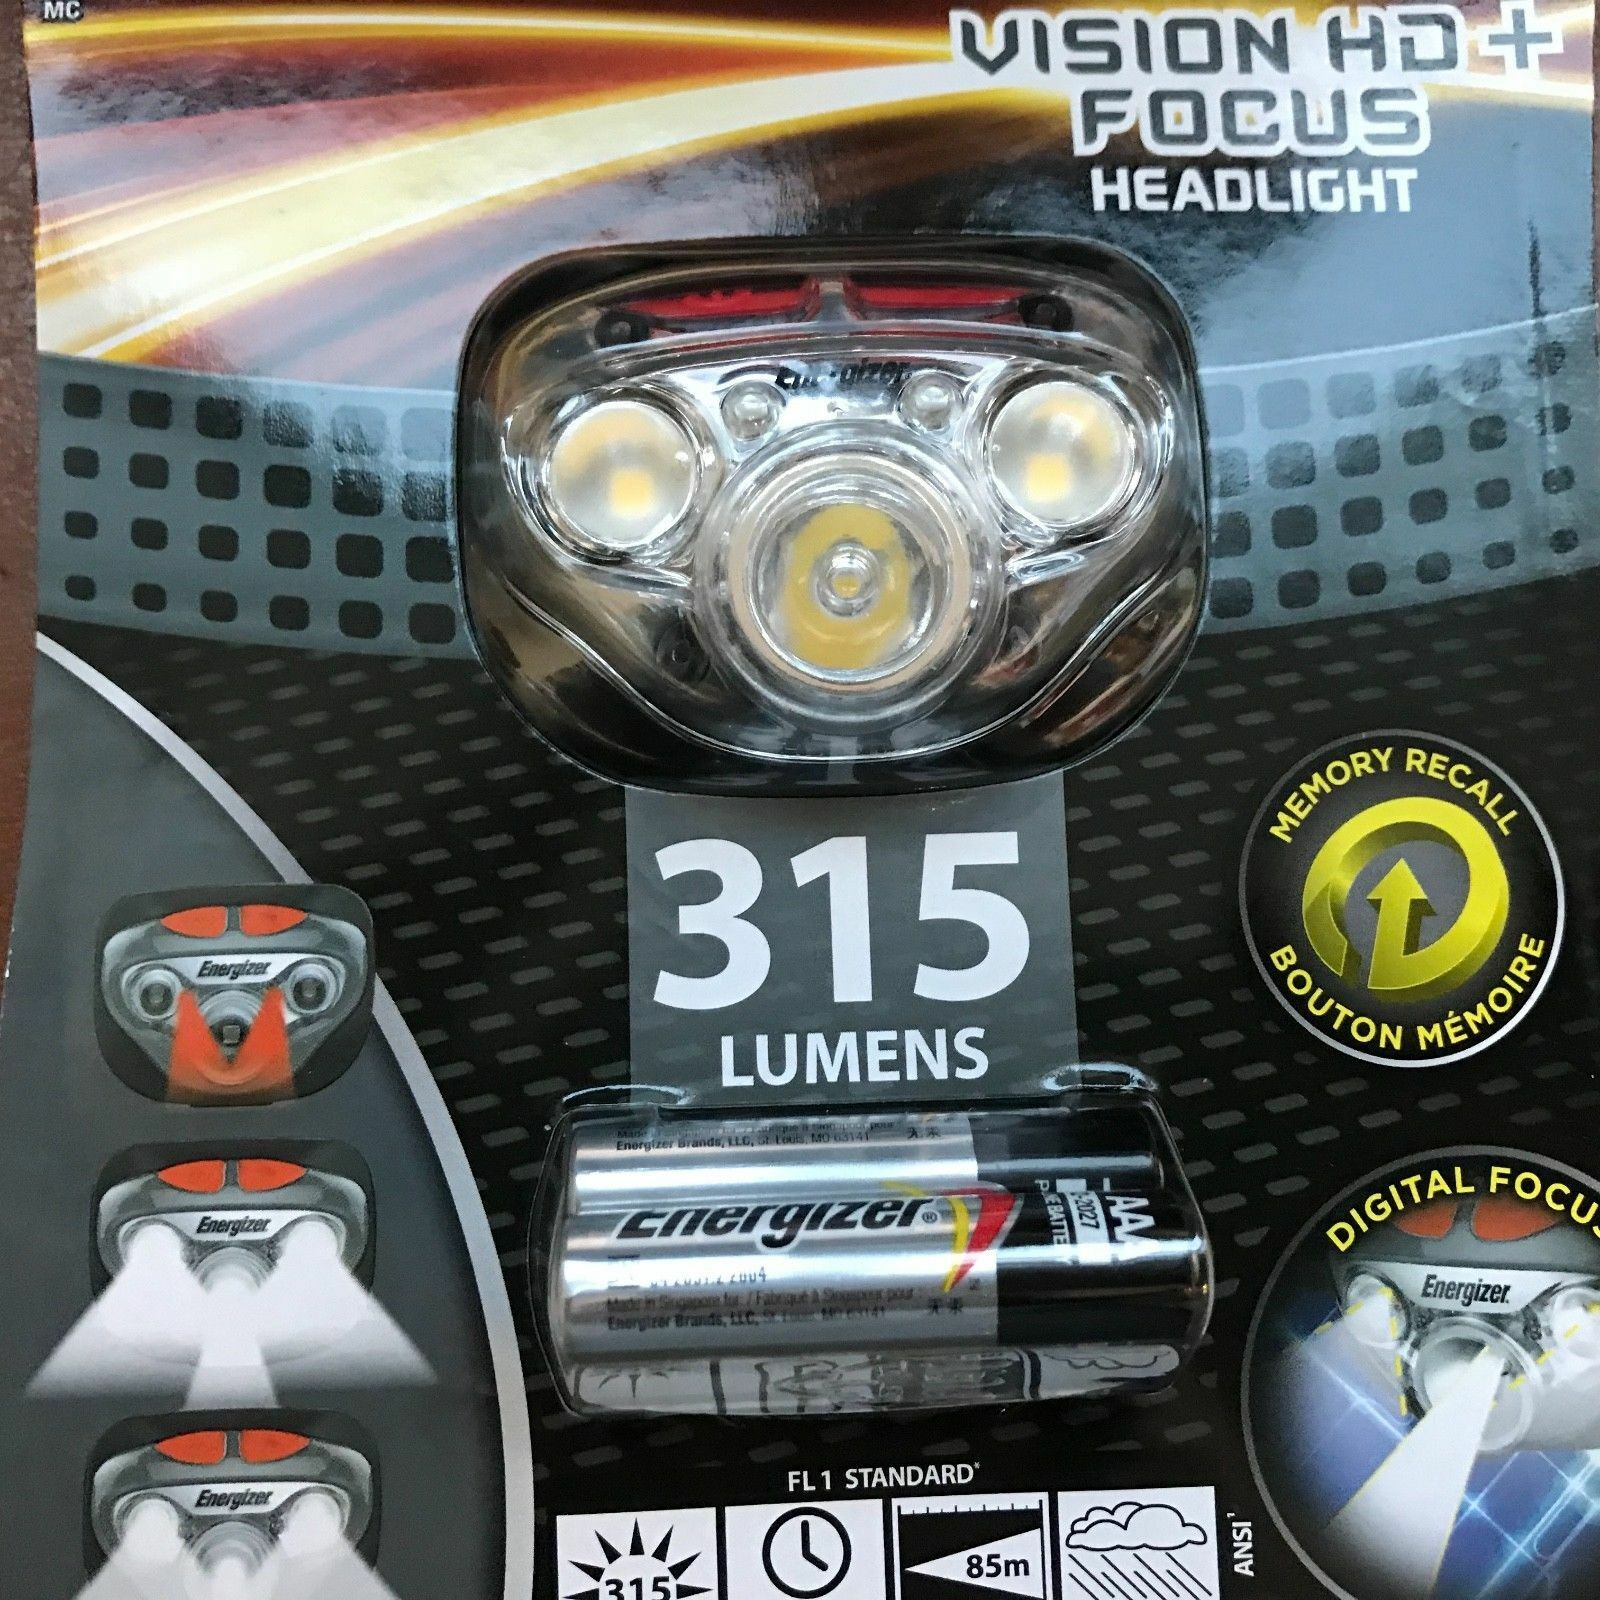 NEUF ENERGIZER vision HD + Focus Torche Phare DEL Avec Max 3 AAA Max Avec piles acfe3e